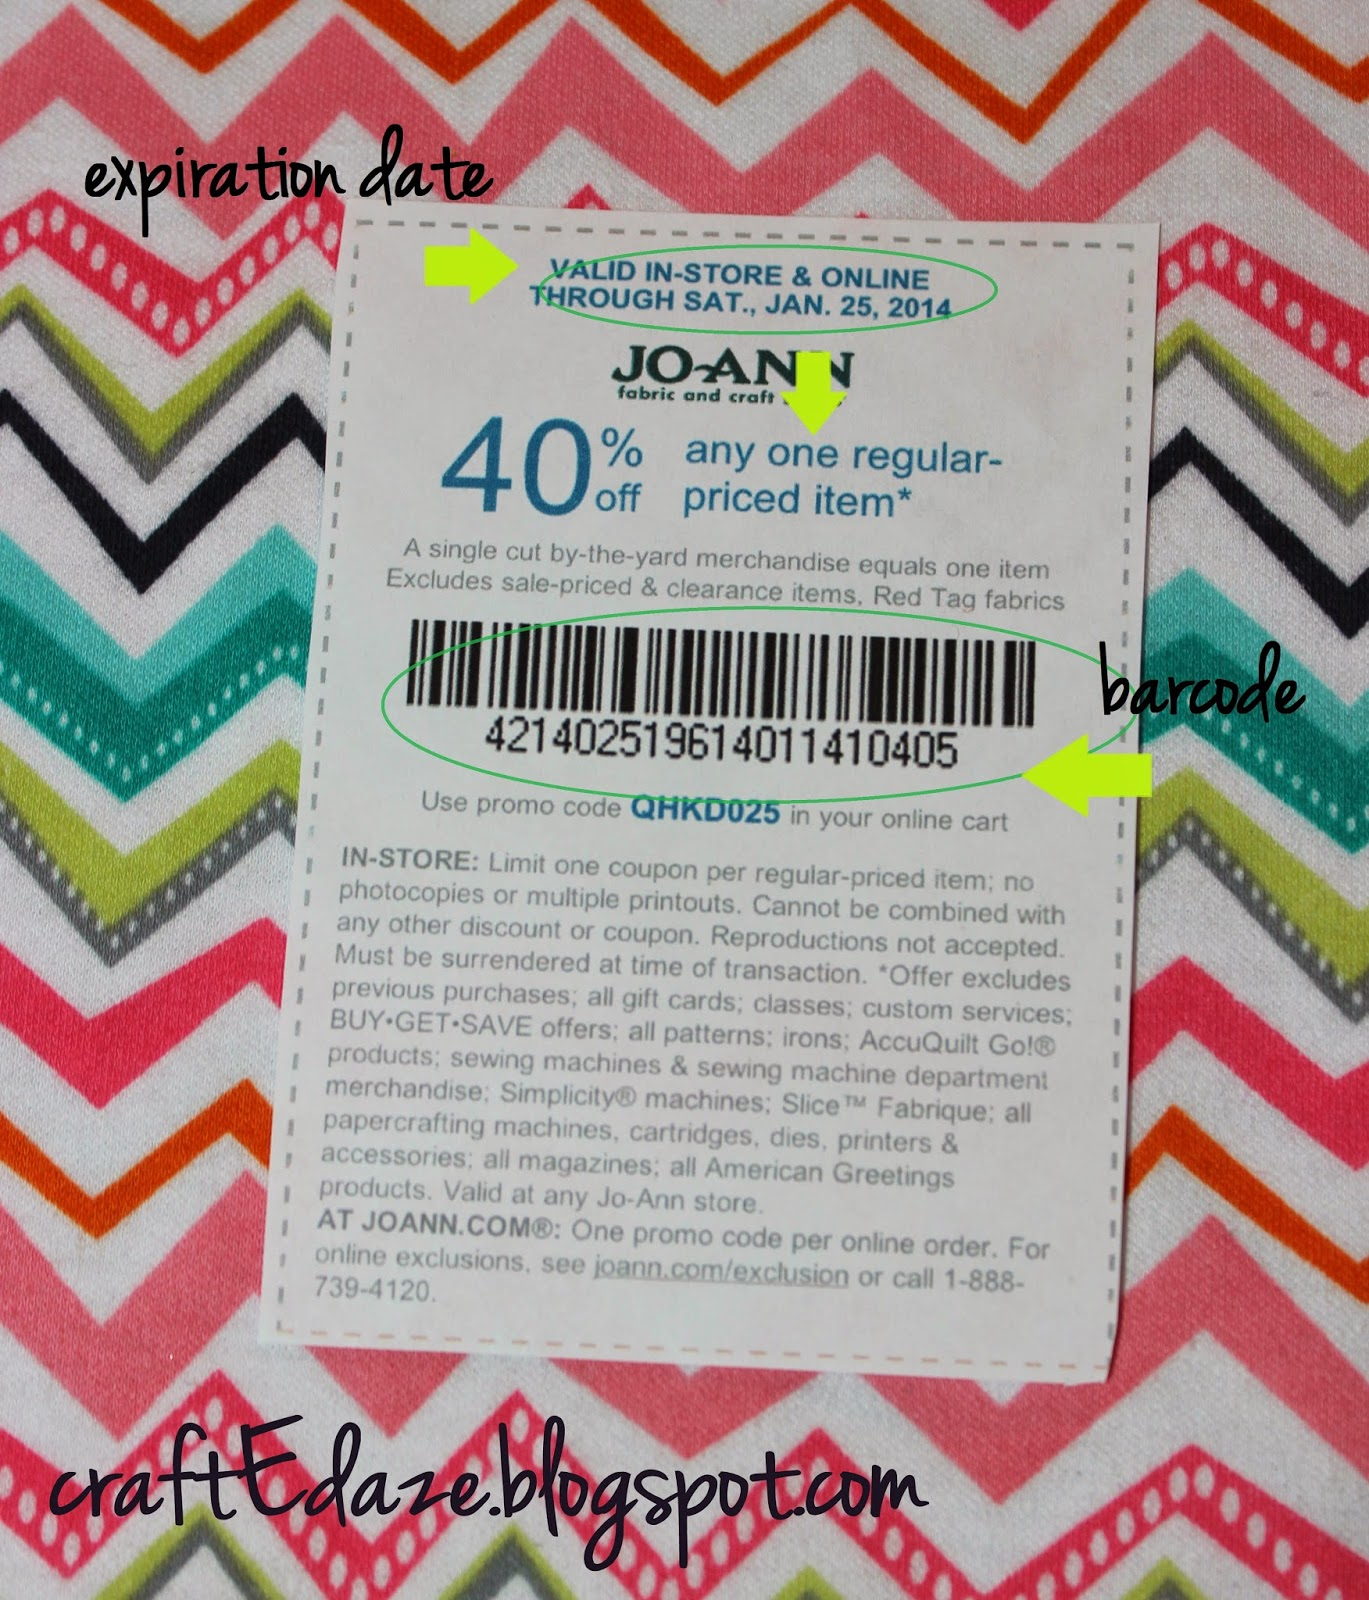 CraftEdaze How To Coupon At JoAnn FabricsNEVER Pay Full Price Again - Download free invoice template online fabric store coupon